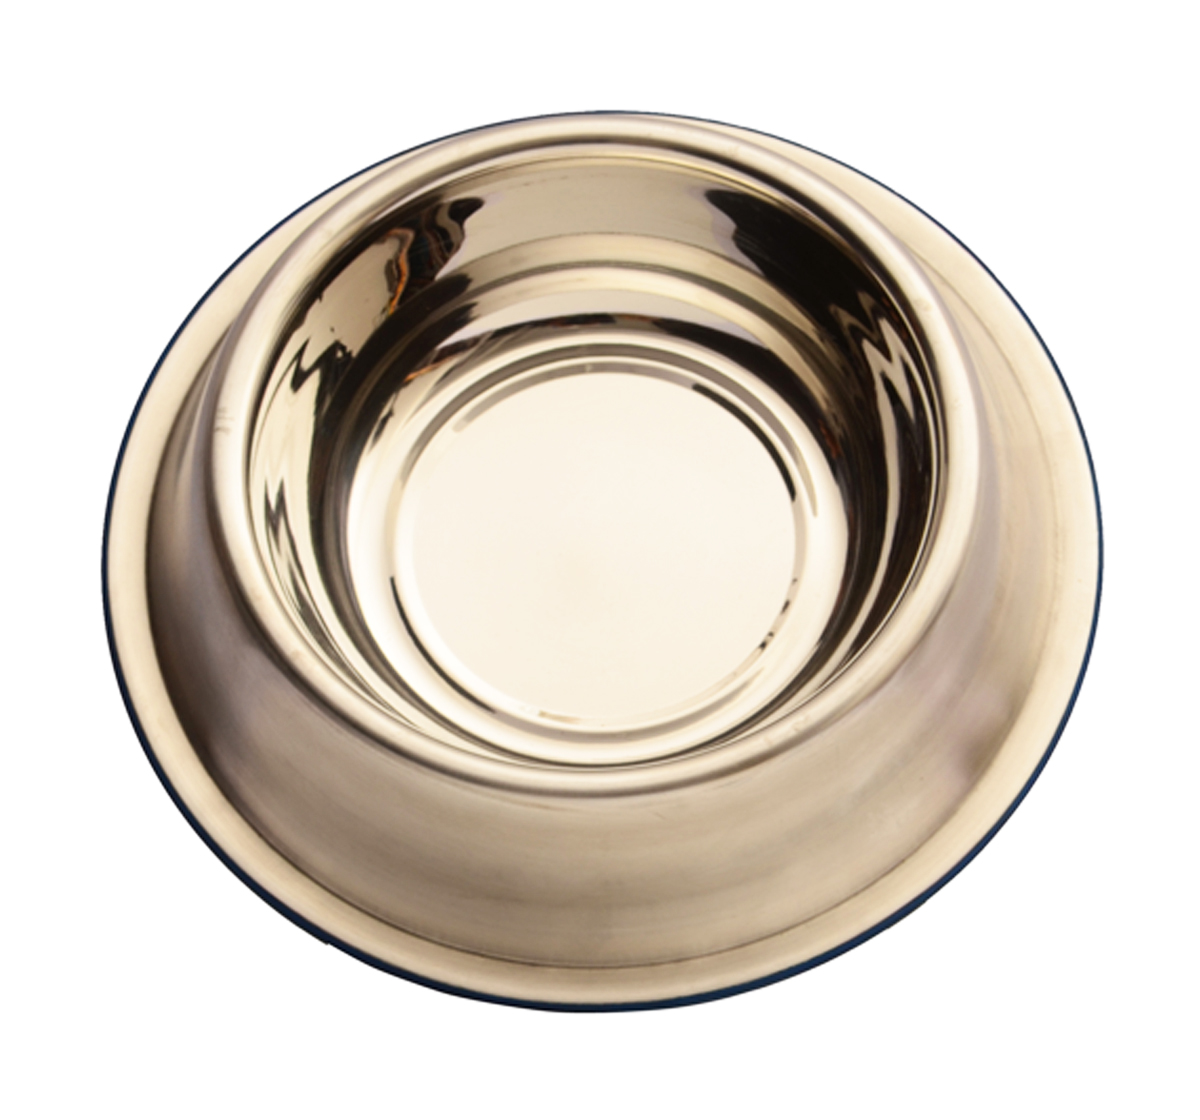 DogSpot Non Tip Dog Bowl 1.8 Liters - XLarge